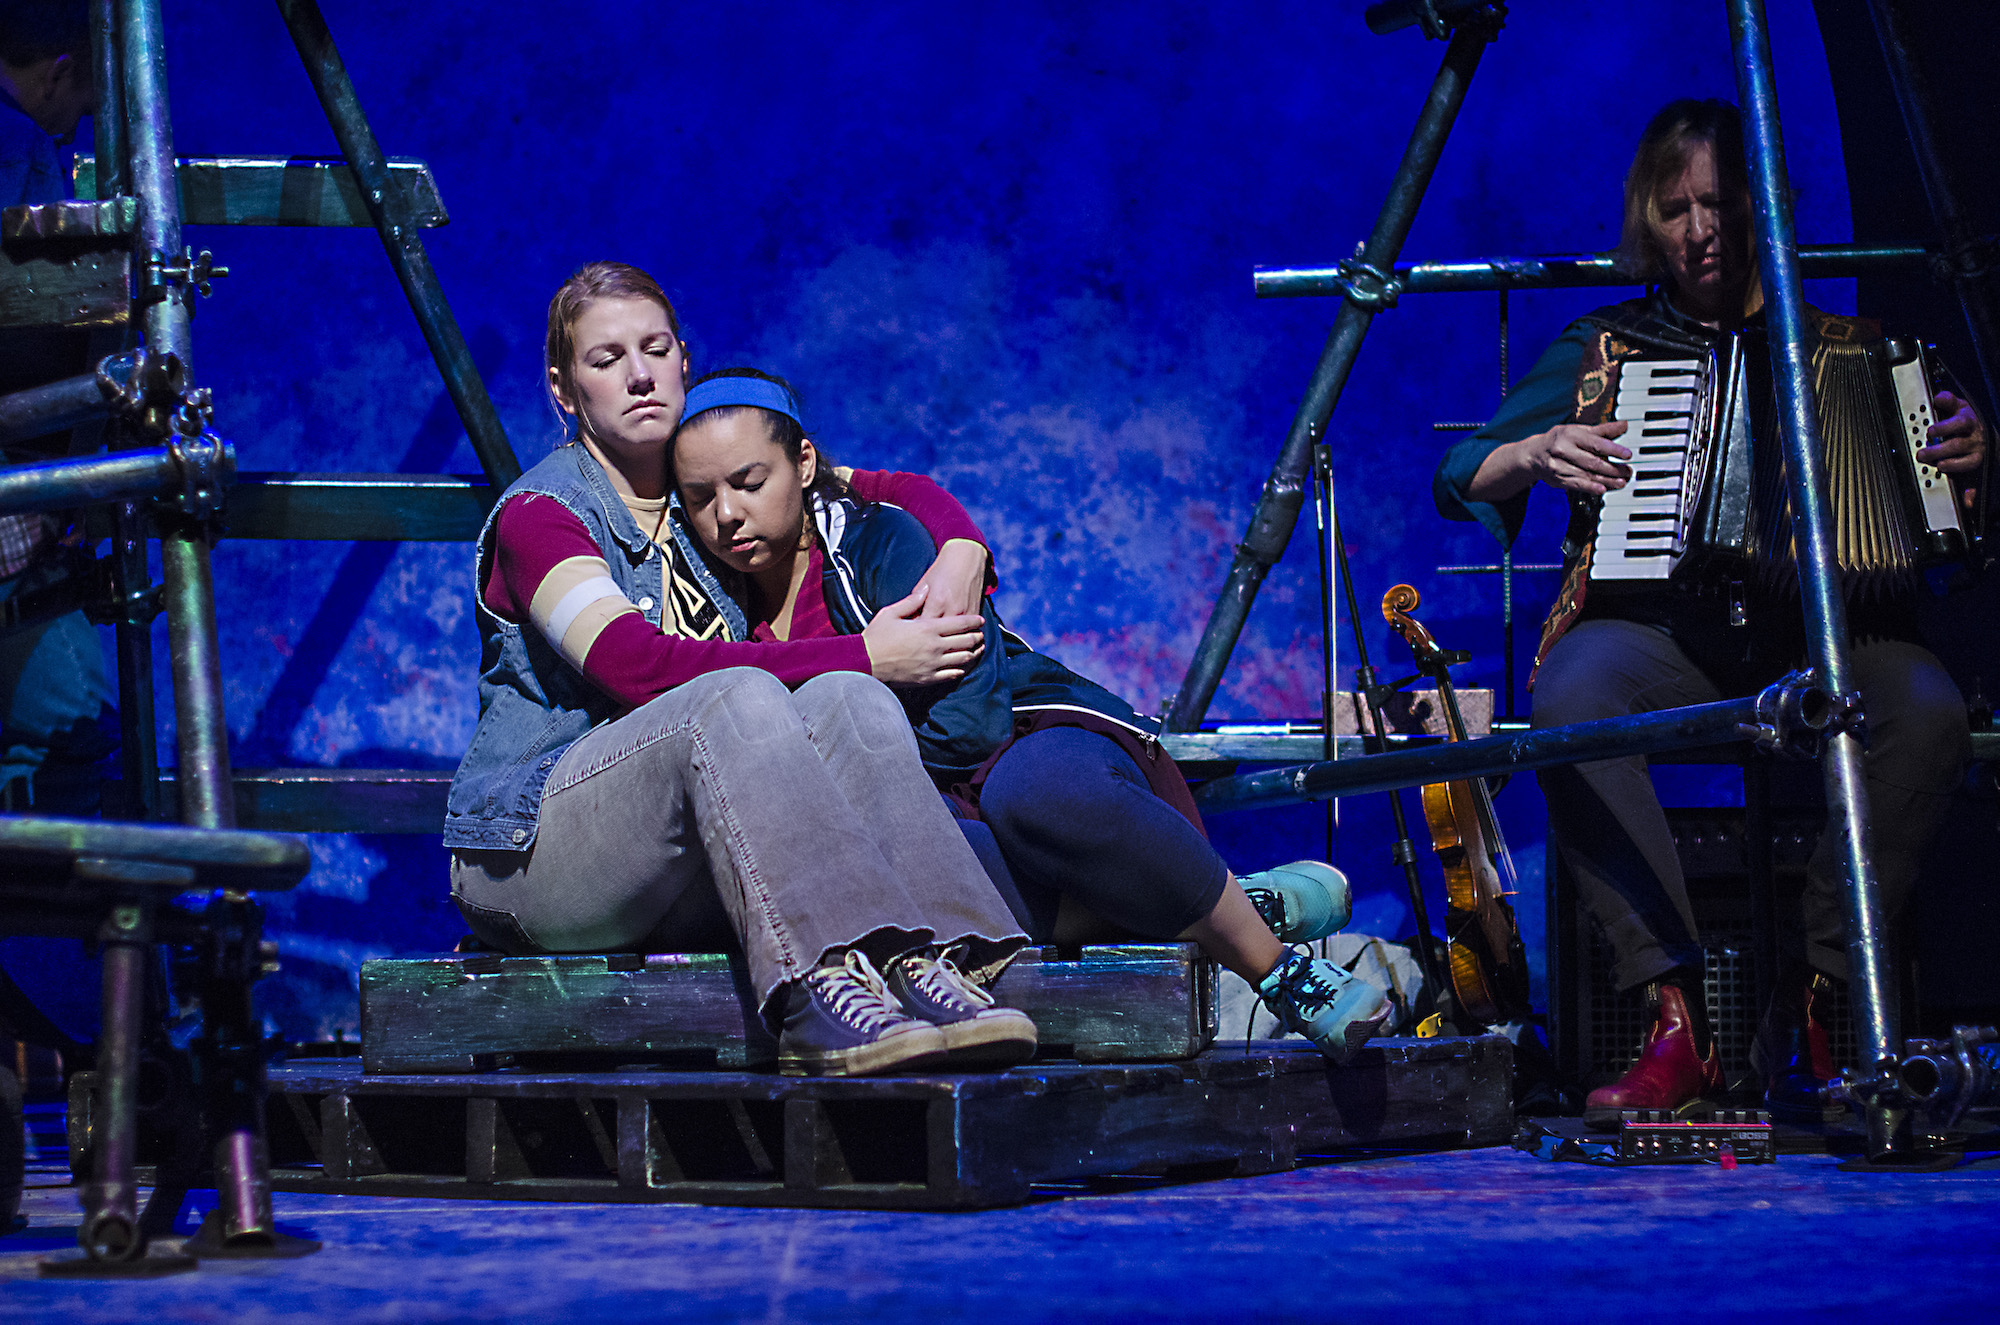 Theatrical tour de force addresses racism and provides hope